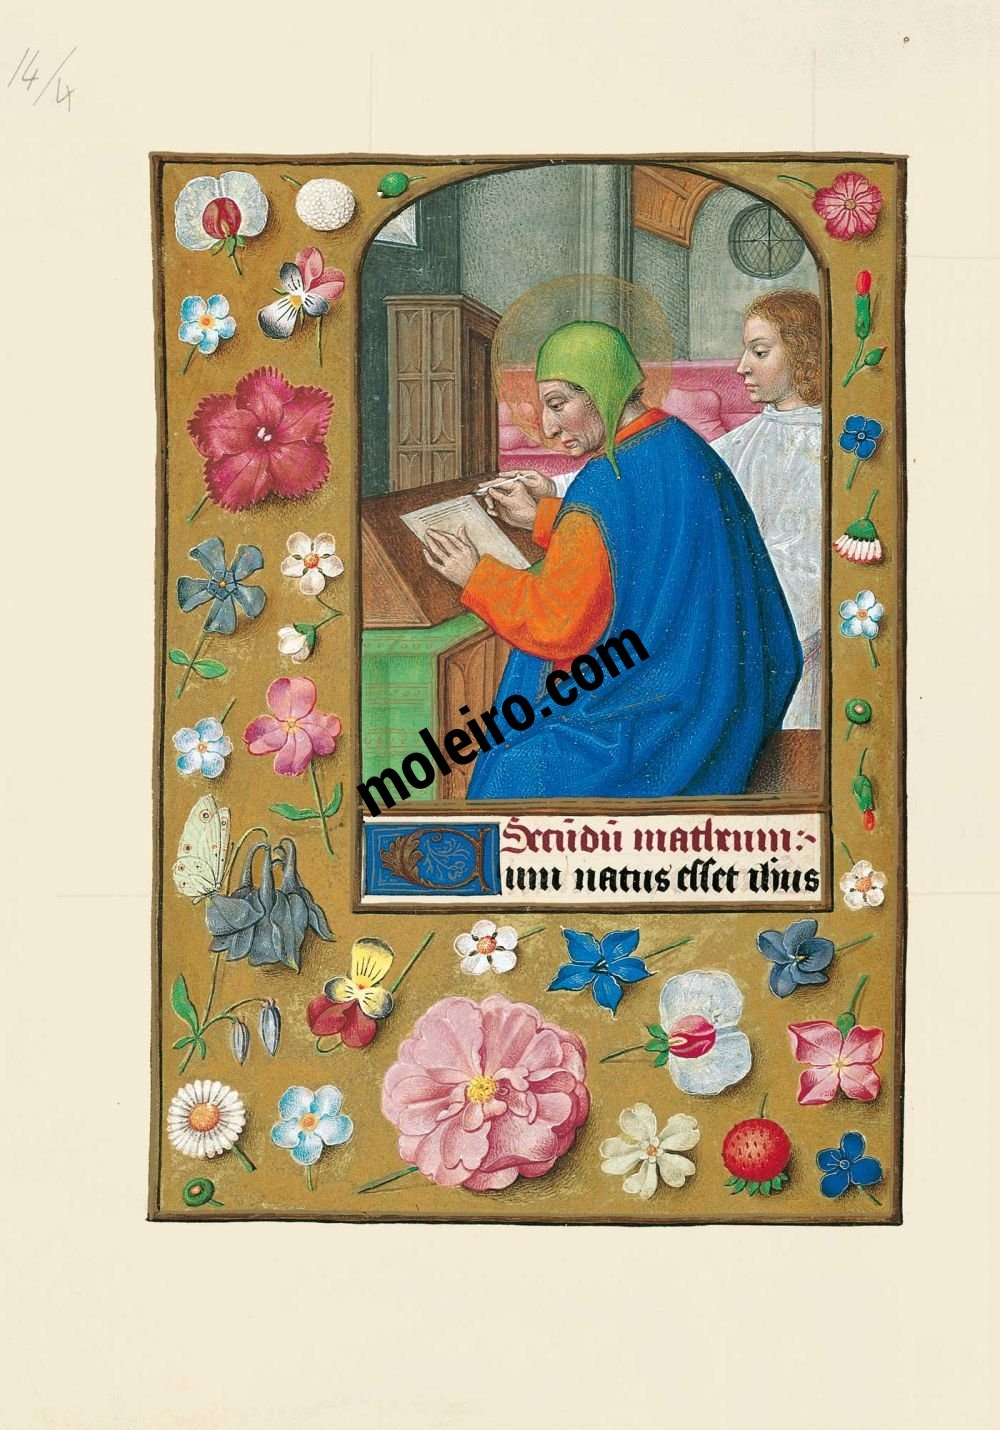 The Hours of Joanna I of Castile, Joanna the Mad (The London Rothschild Prayerbook) f. 14v, St. Matthew